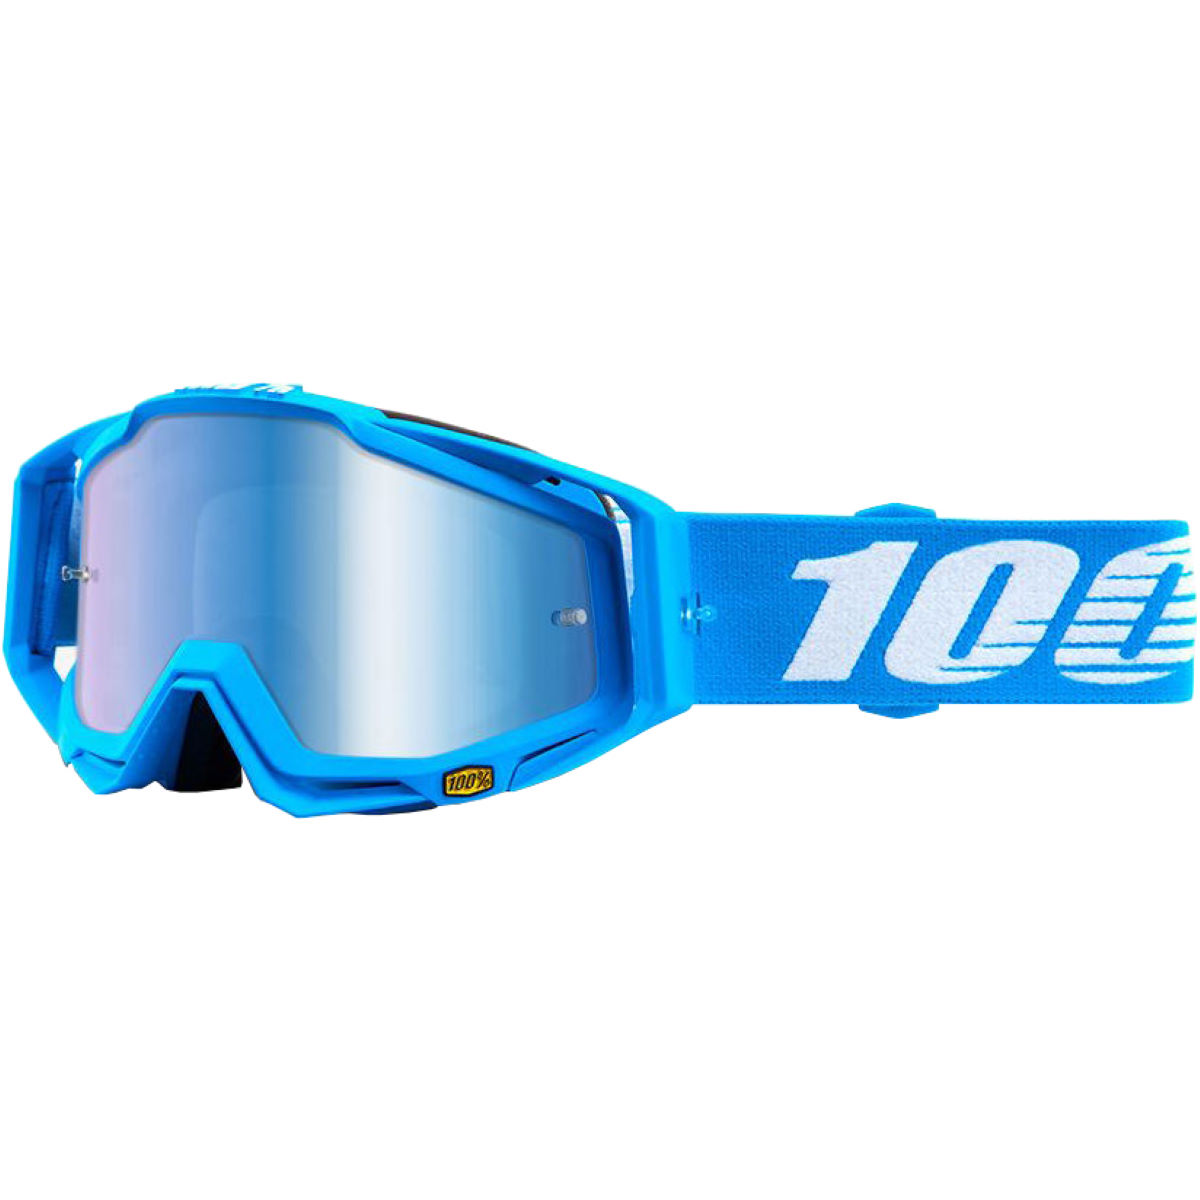 100% RACECRAFT Monoblock - Mirror Blue Lens   Cycling Goggles